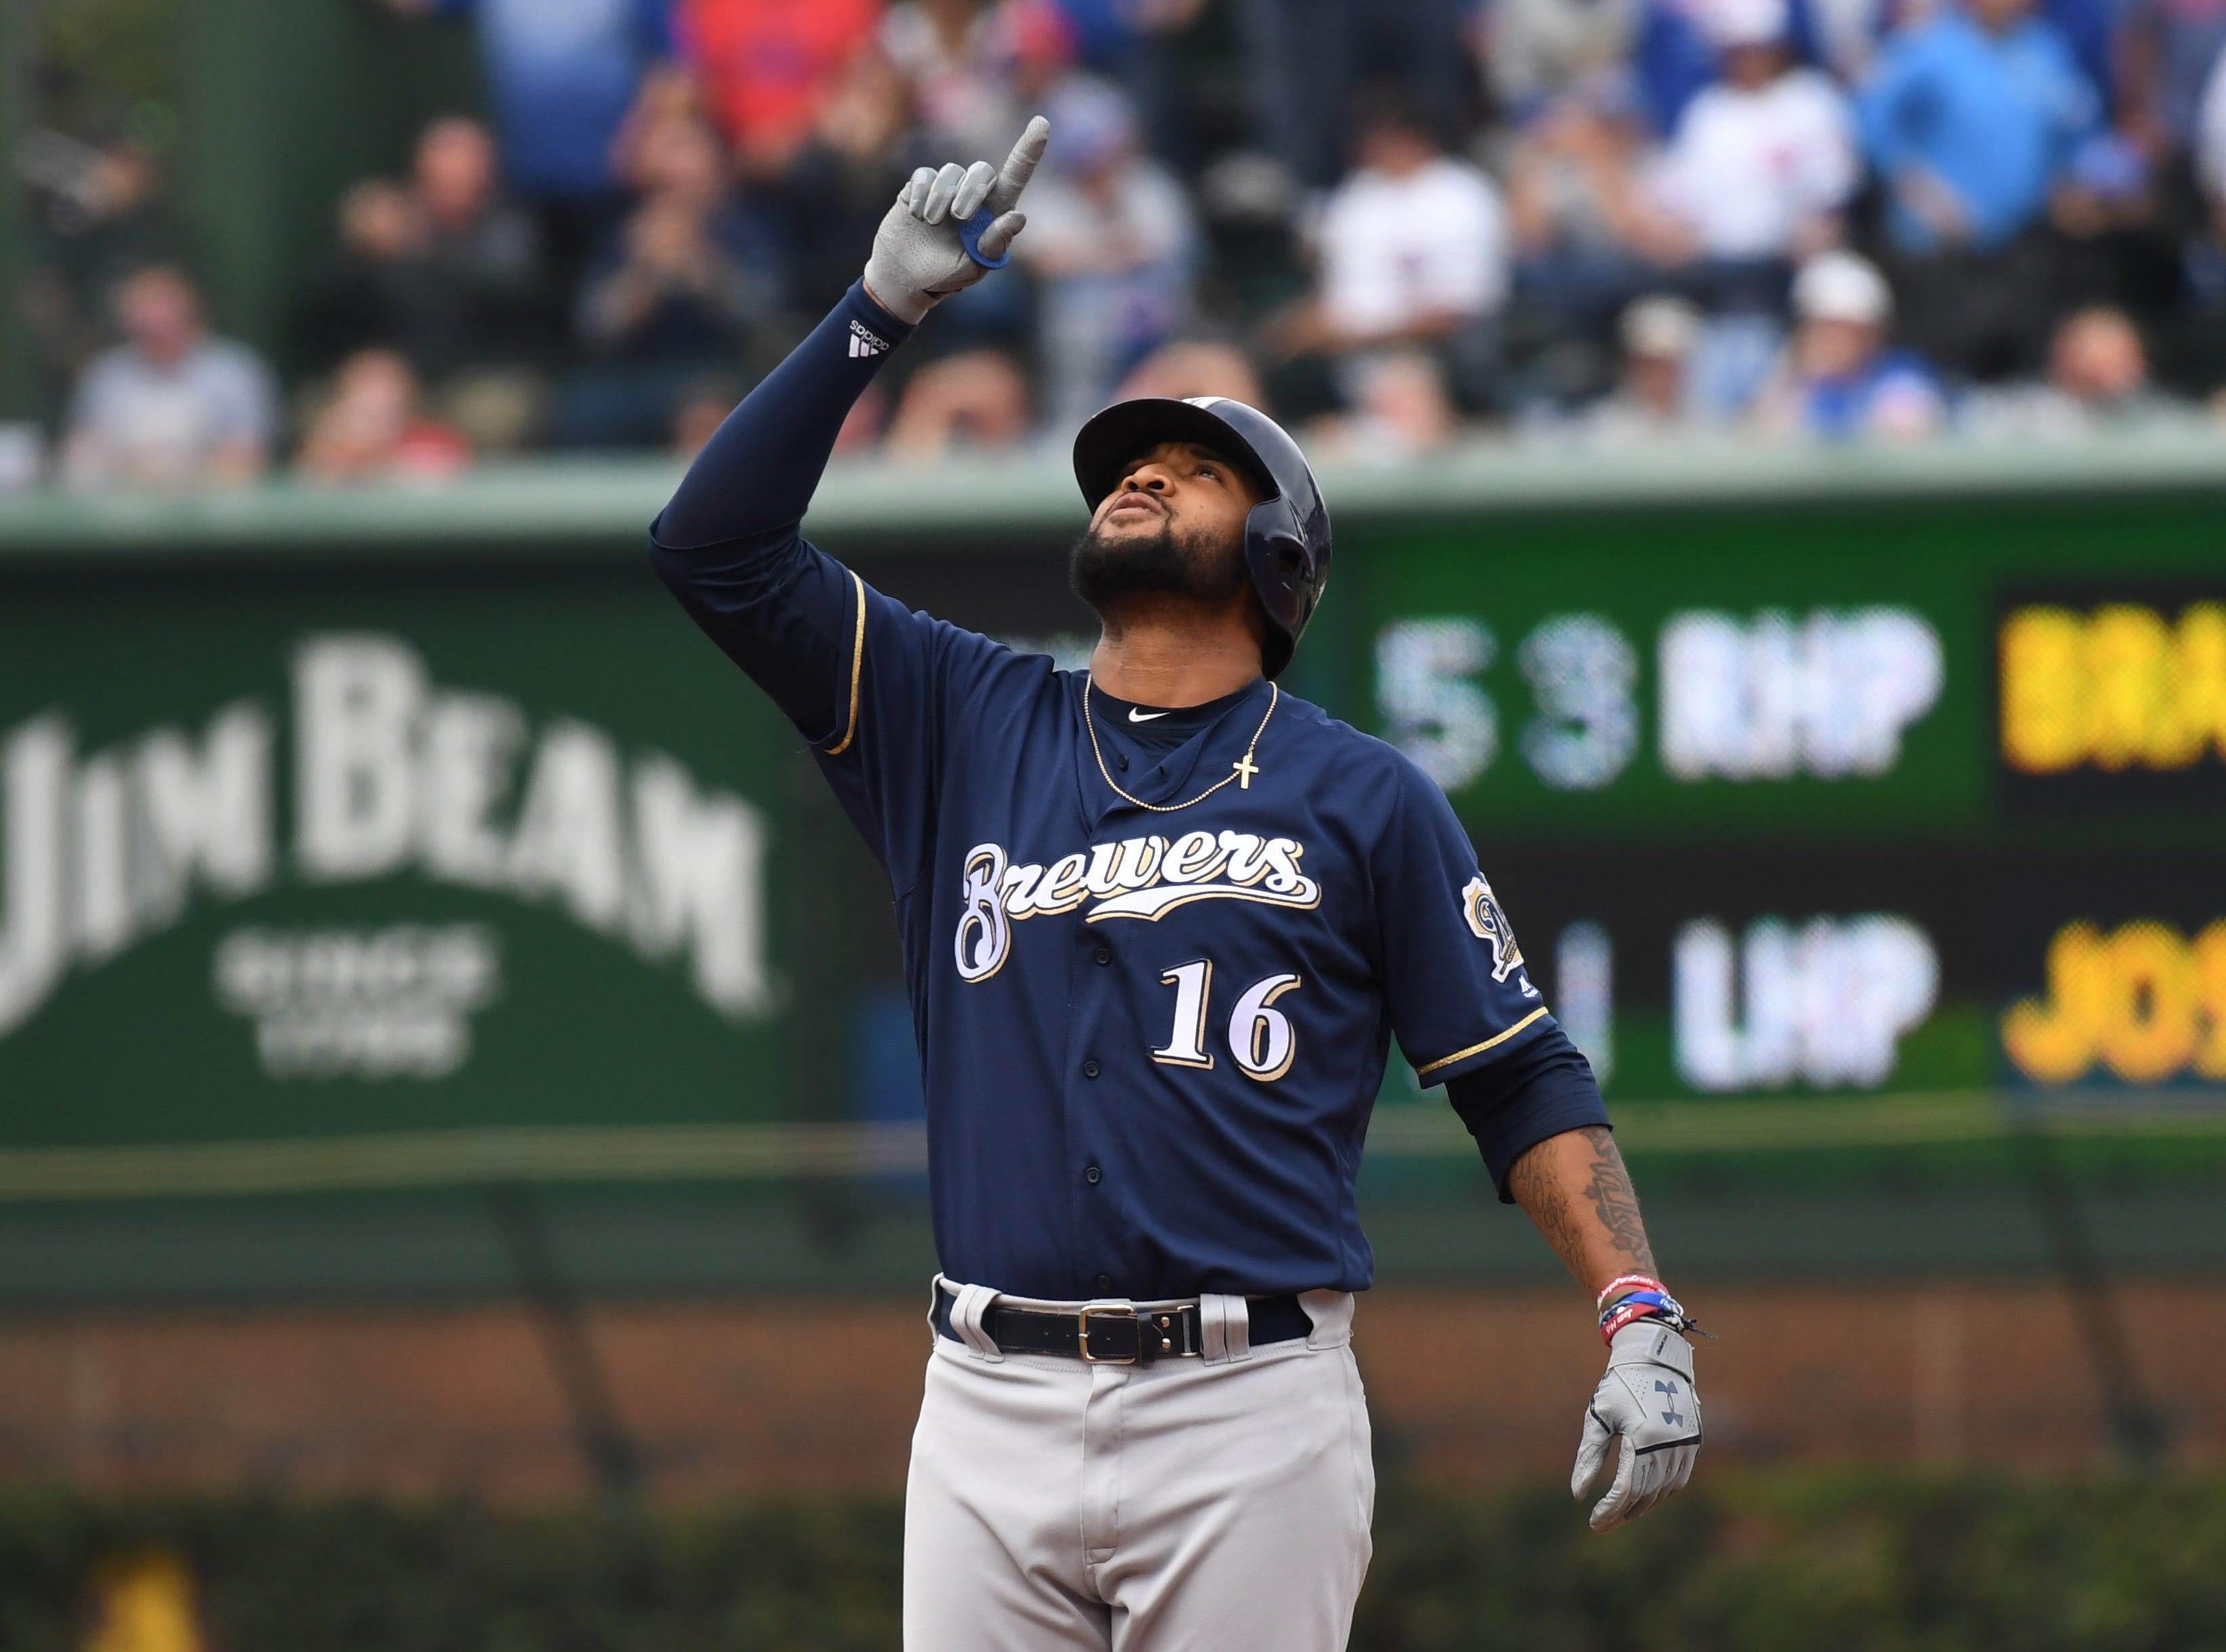 Milwaukee's Domingo Santana celebrates after hitting a double in the eighth inning.